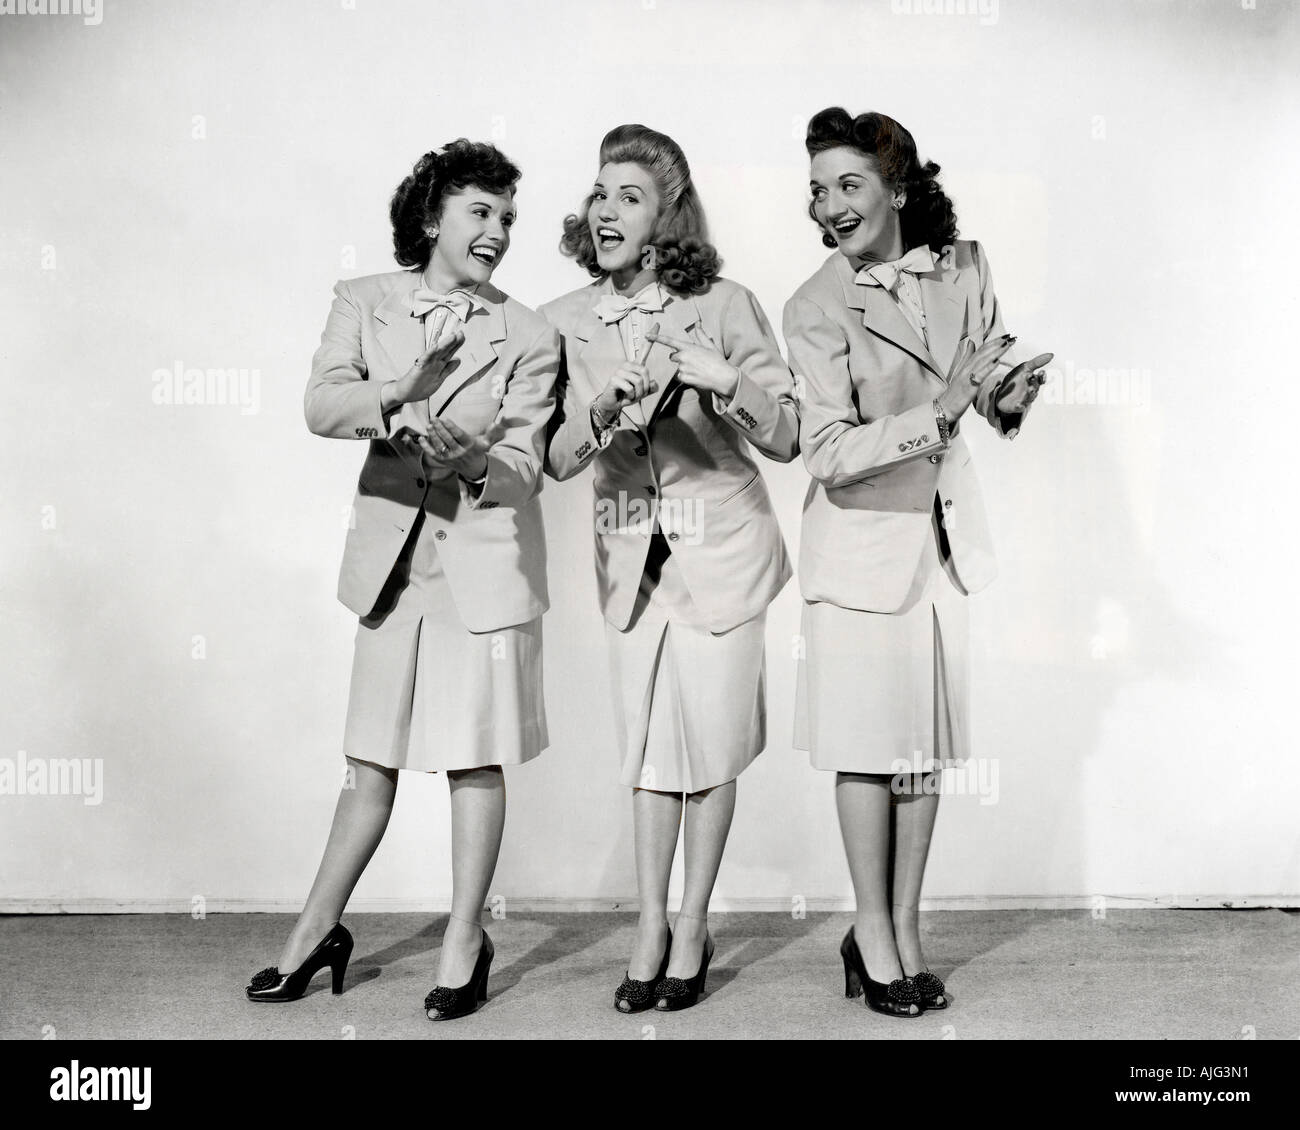 the andrews sisters stock photos the andrews sisters stock images